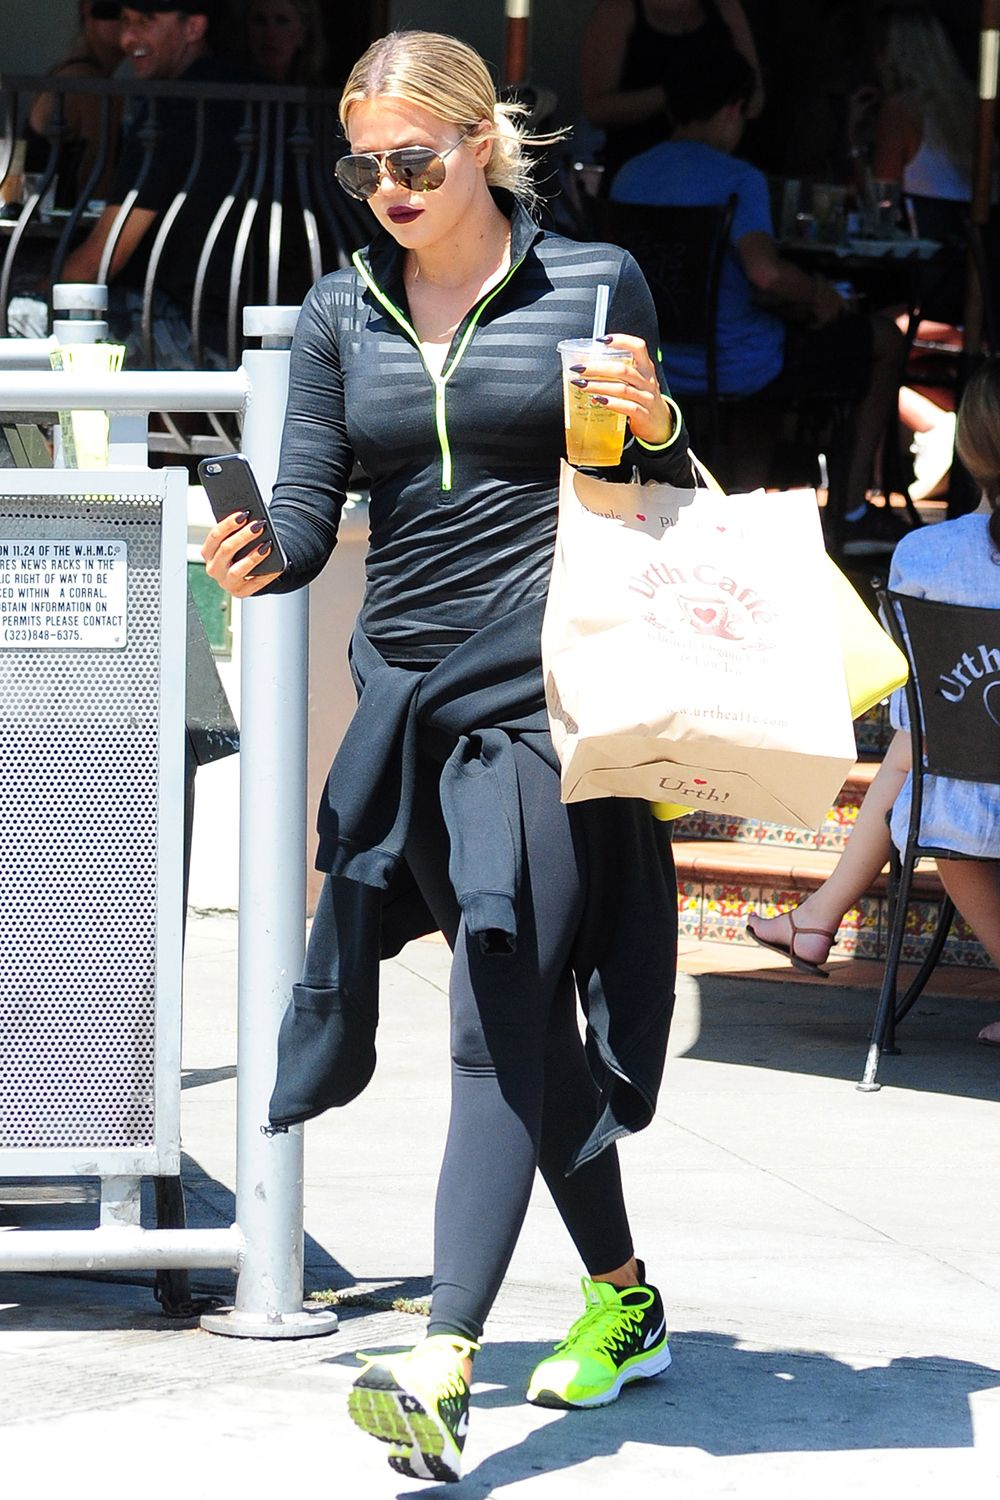 d3b26a213e483c Celebrity Workout Clothes: What To Wear To The Gym | Gym Gear ...